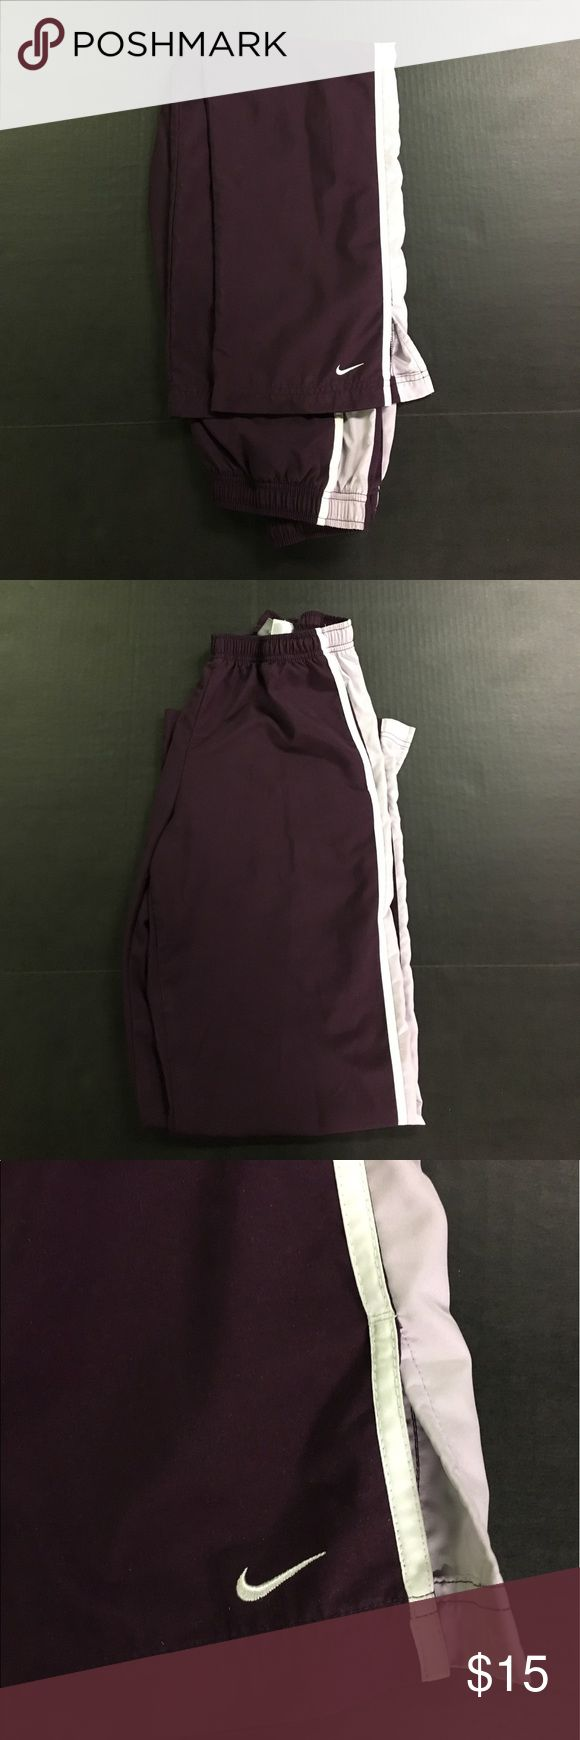 "Pre-owned Women's Purple/White Nike Athletic Pants Item Description: Pre-owned Women's Purple and White Nike Athletic Pants (Size Small 4-6)  Brand: Nike  Material:  Size: Small (4-6) Retail Price: $45 Condition: Clothing may have remnants of prior fragrances from prior use and wear. Authenticity: 100% Guaranteed   Length Dimensions: 39""  Waist Dimensions: 13""  Inseam Dimensions: 28""   Note: Please remember that some of my store items are secondhand clothing meaning used/pre-owned condition…"